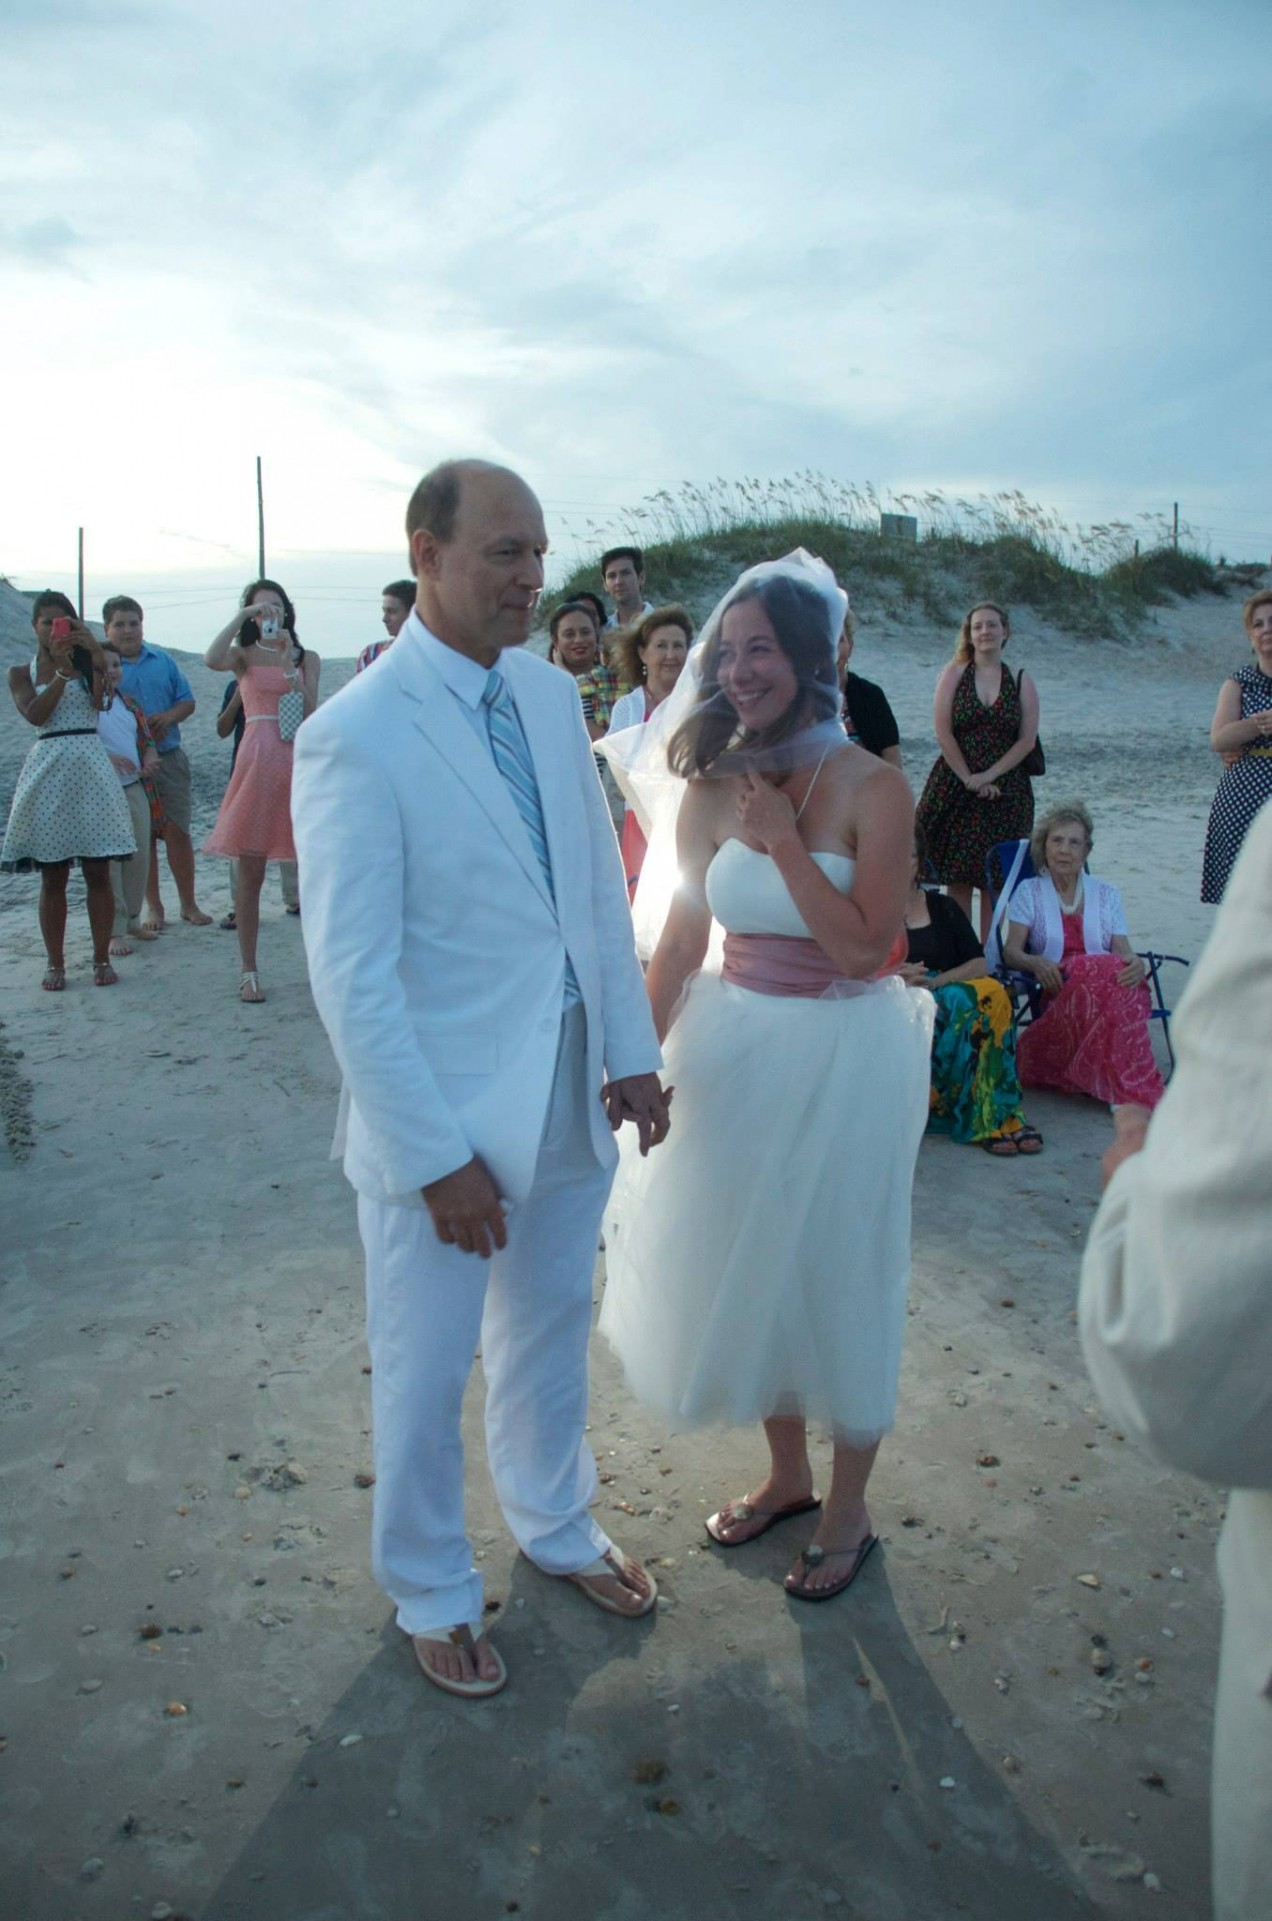 betrothed May 25, 2014, wedding July 27, 2014